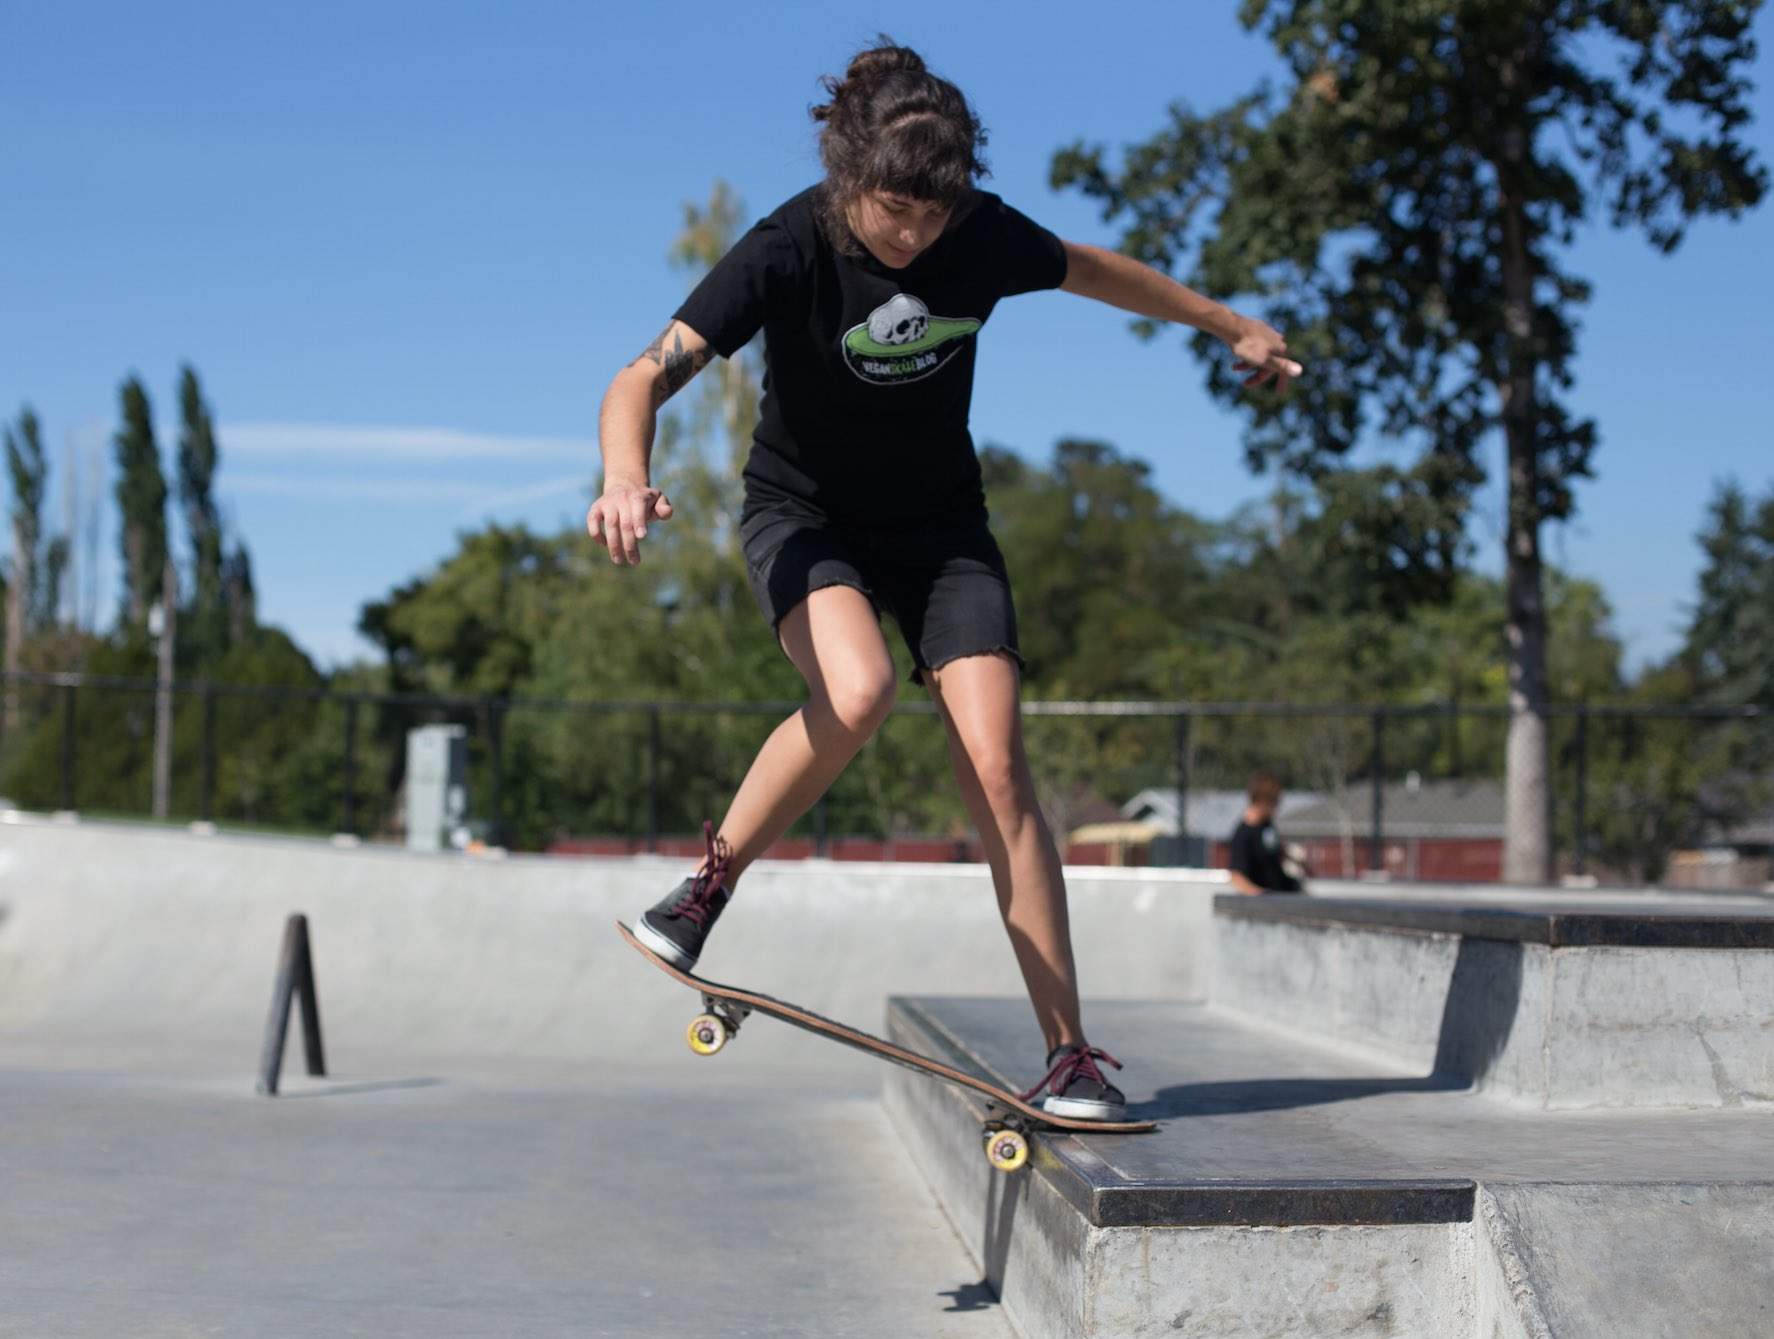 women skaters unisex ethical fashion ethical apparel vegan recycled